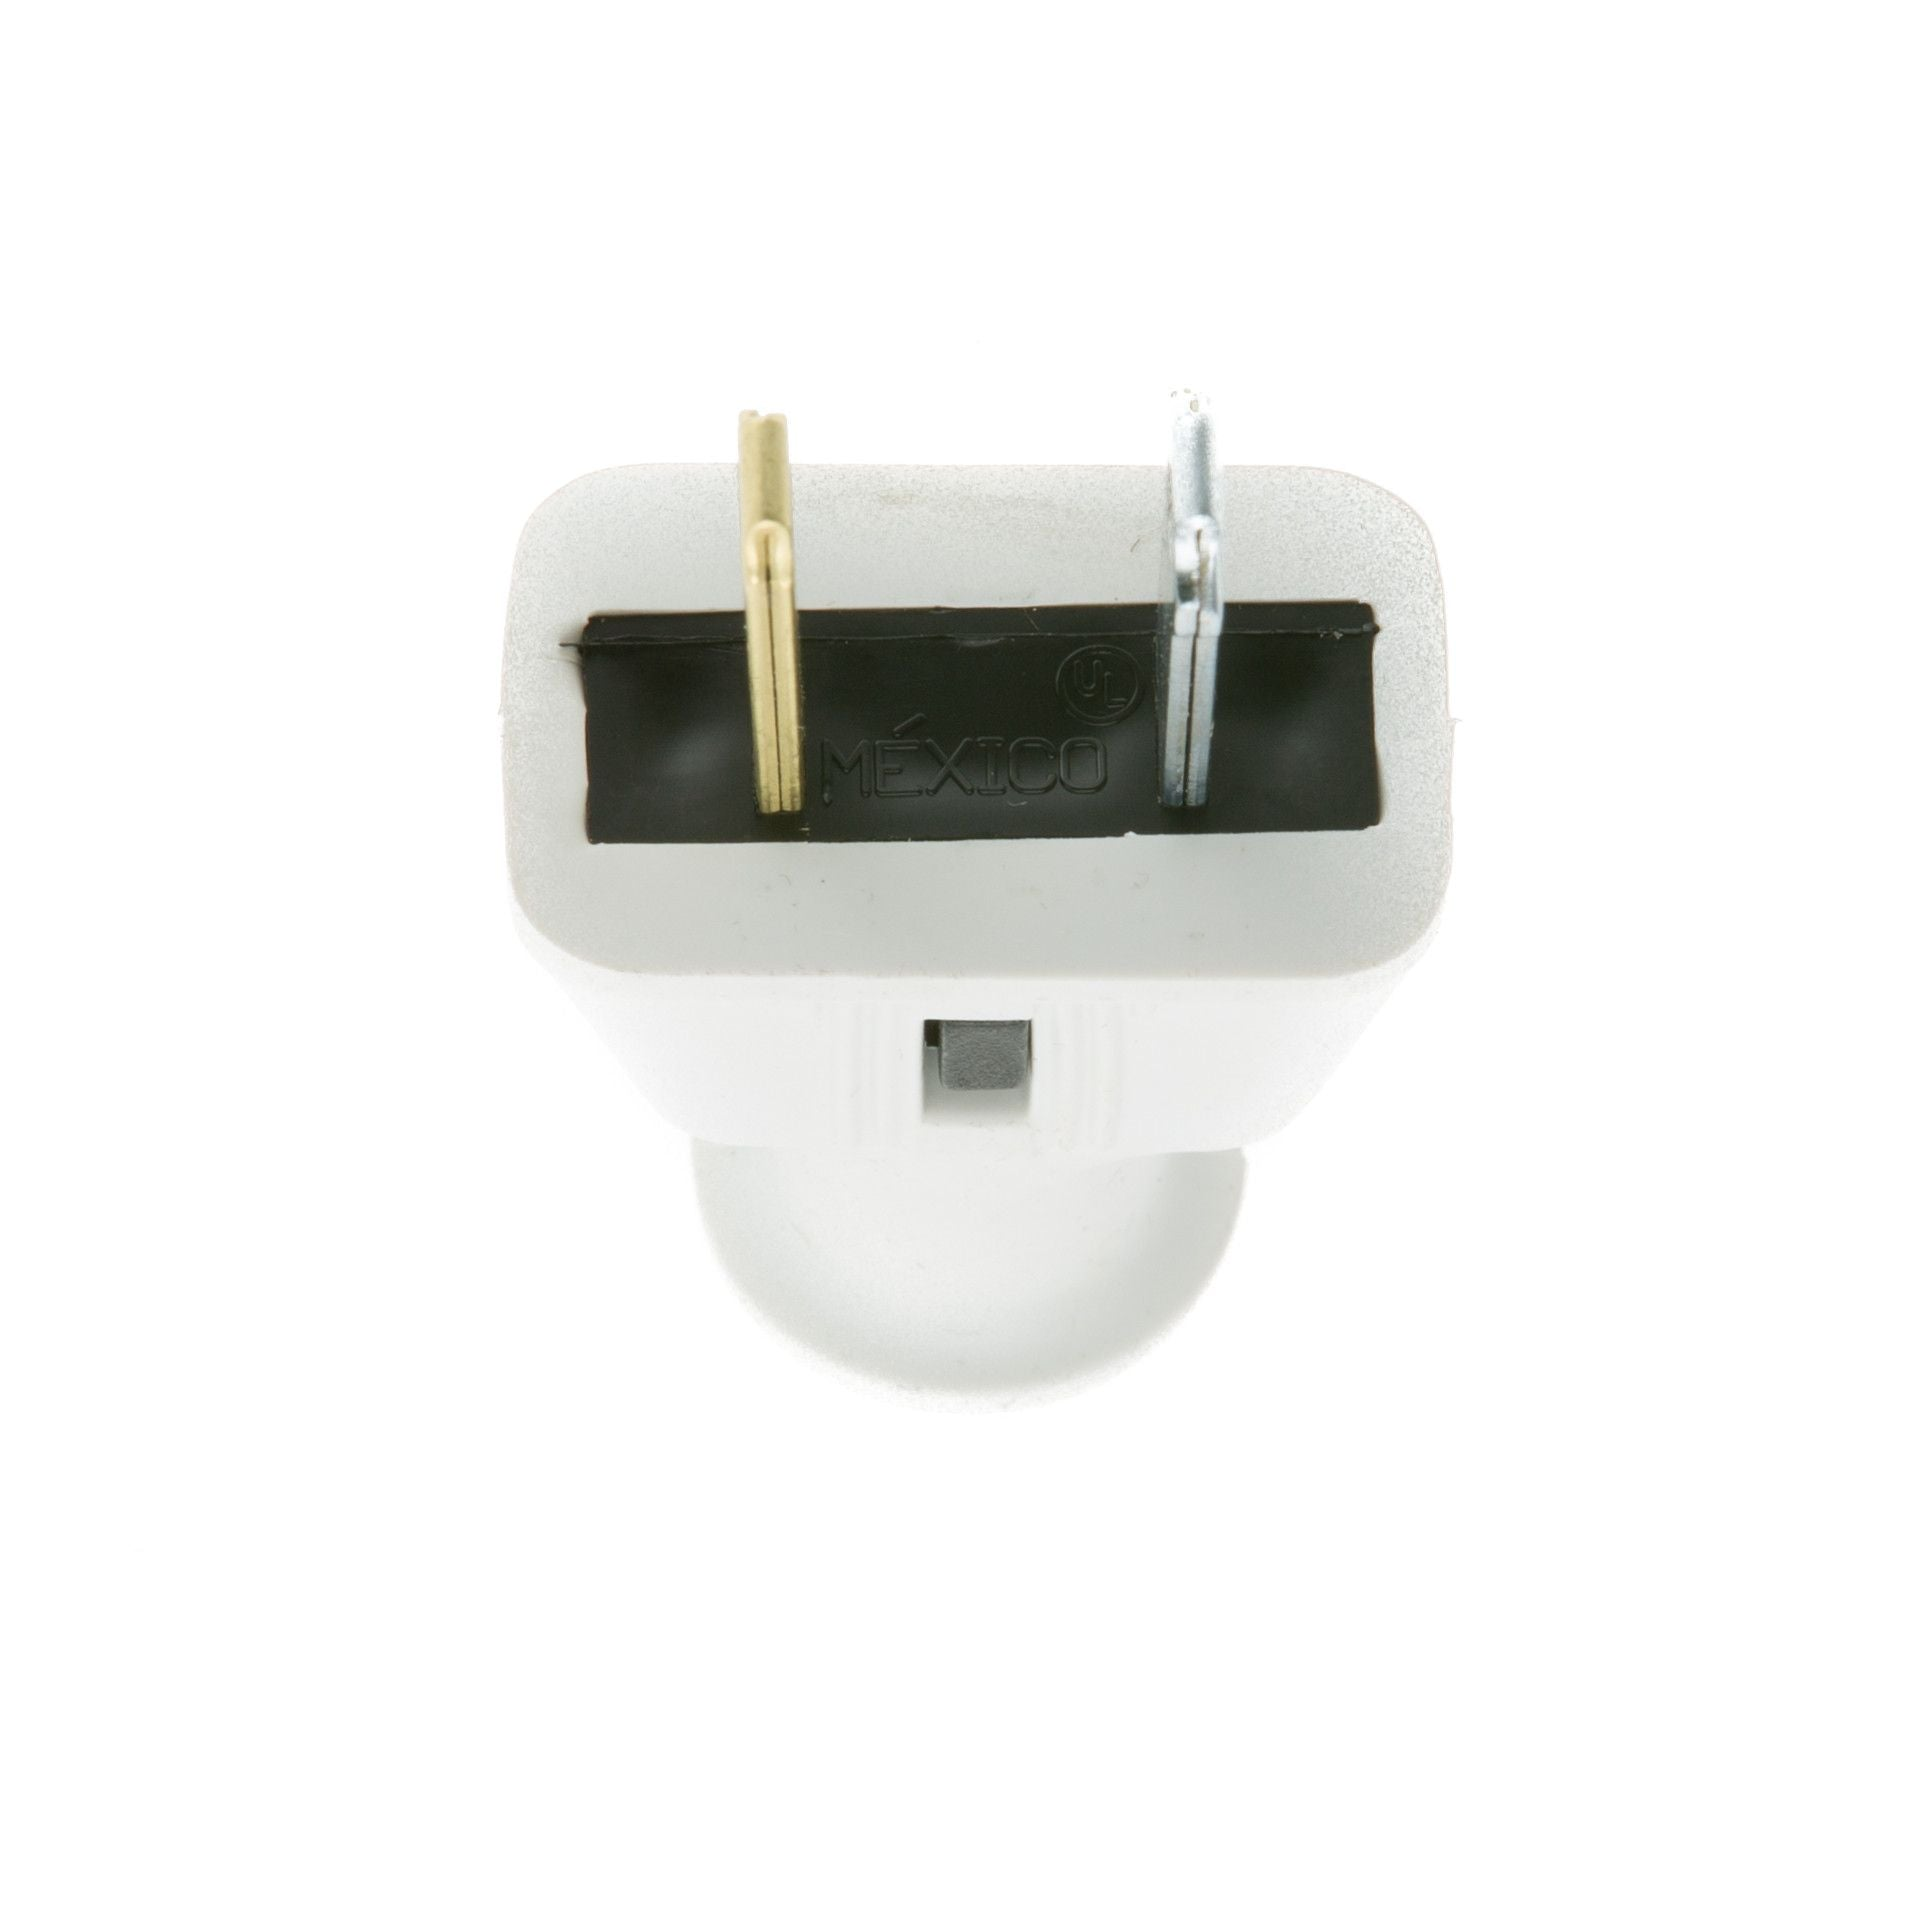 Rubber Plug End White Color Cord Company Wiring An Outlet With 2 Black